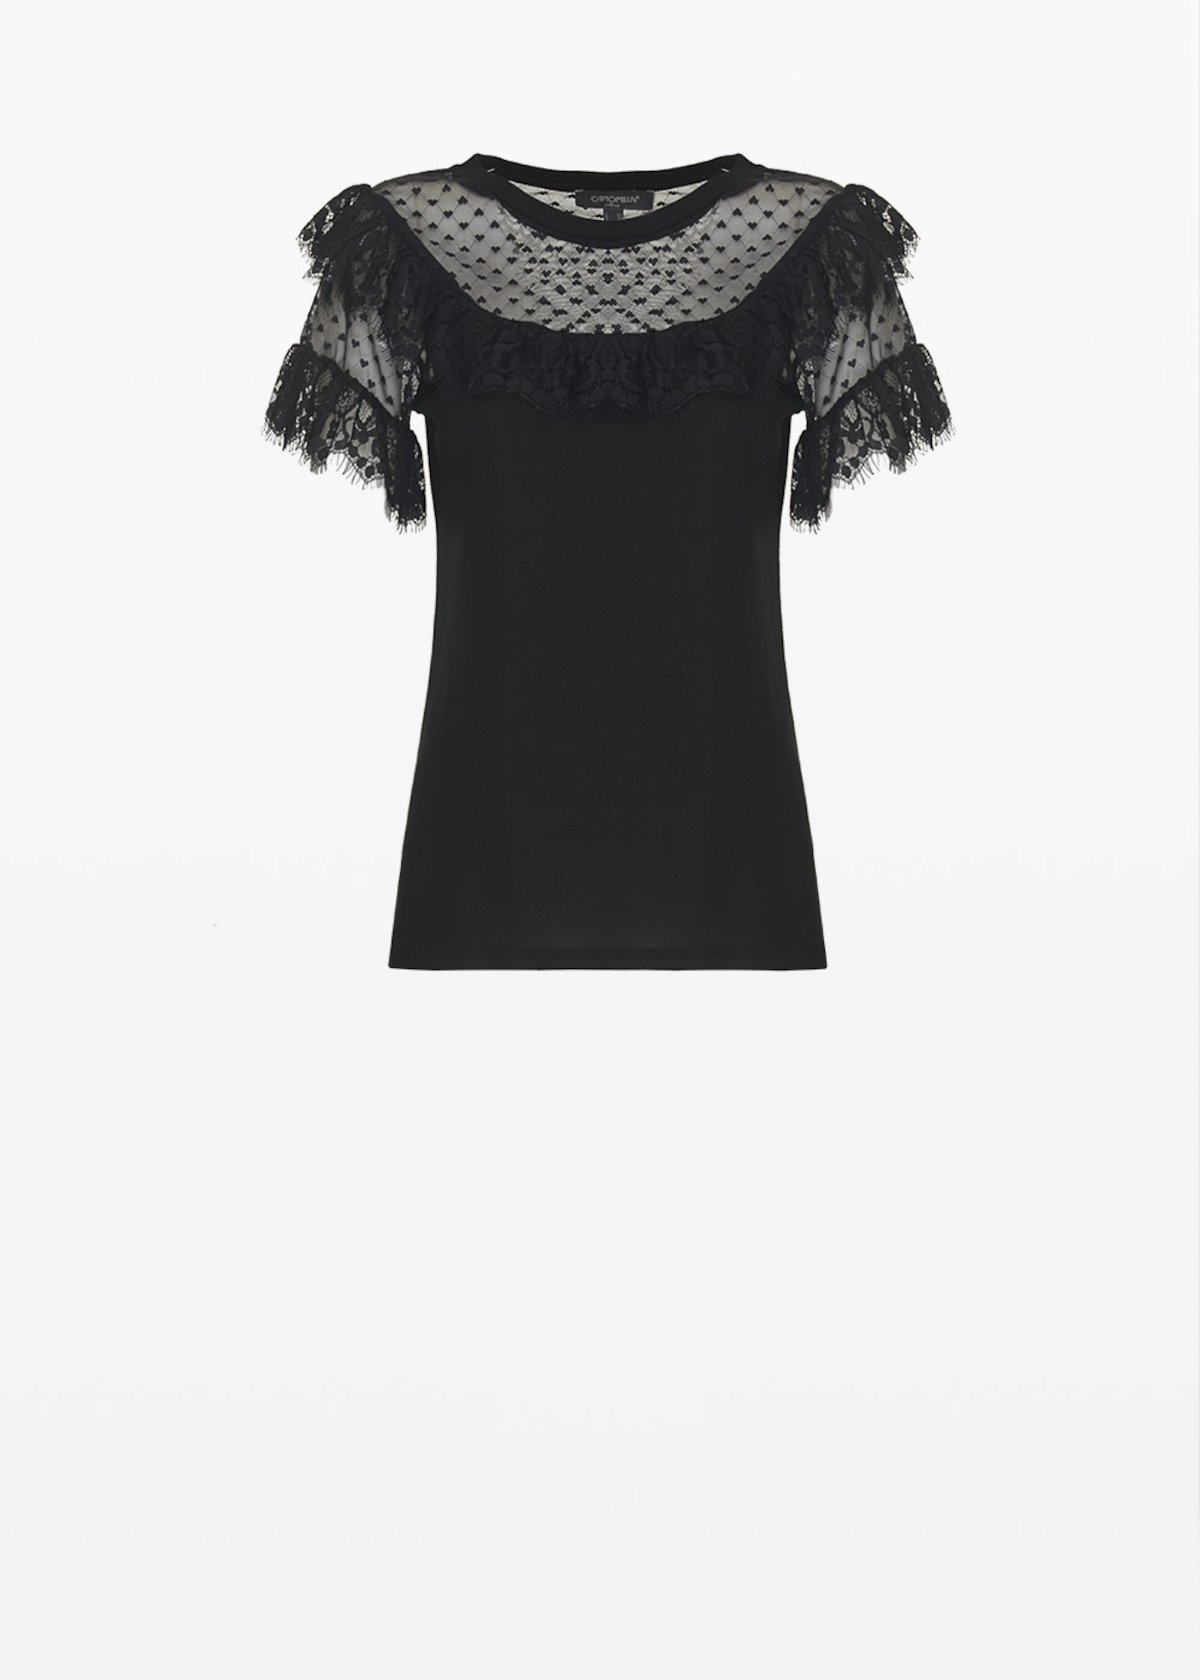 T-shirt Sellie in jersey con rouches in pizzo - Black - Donna - Immagine categoria